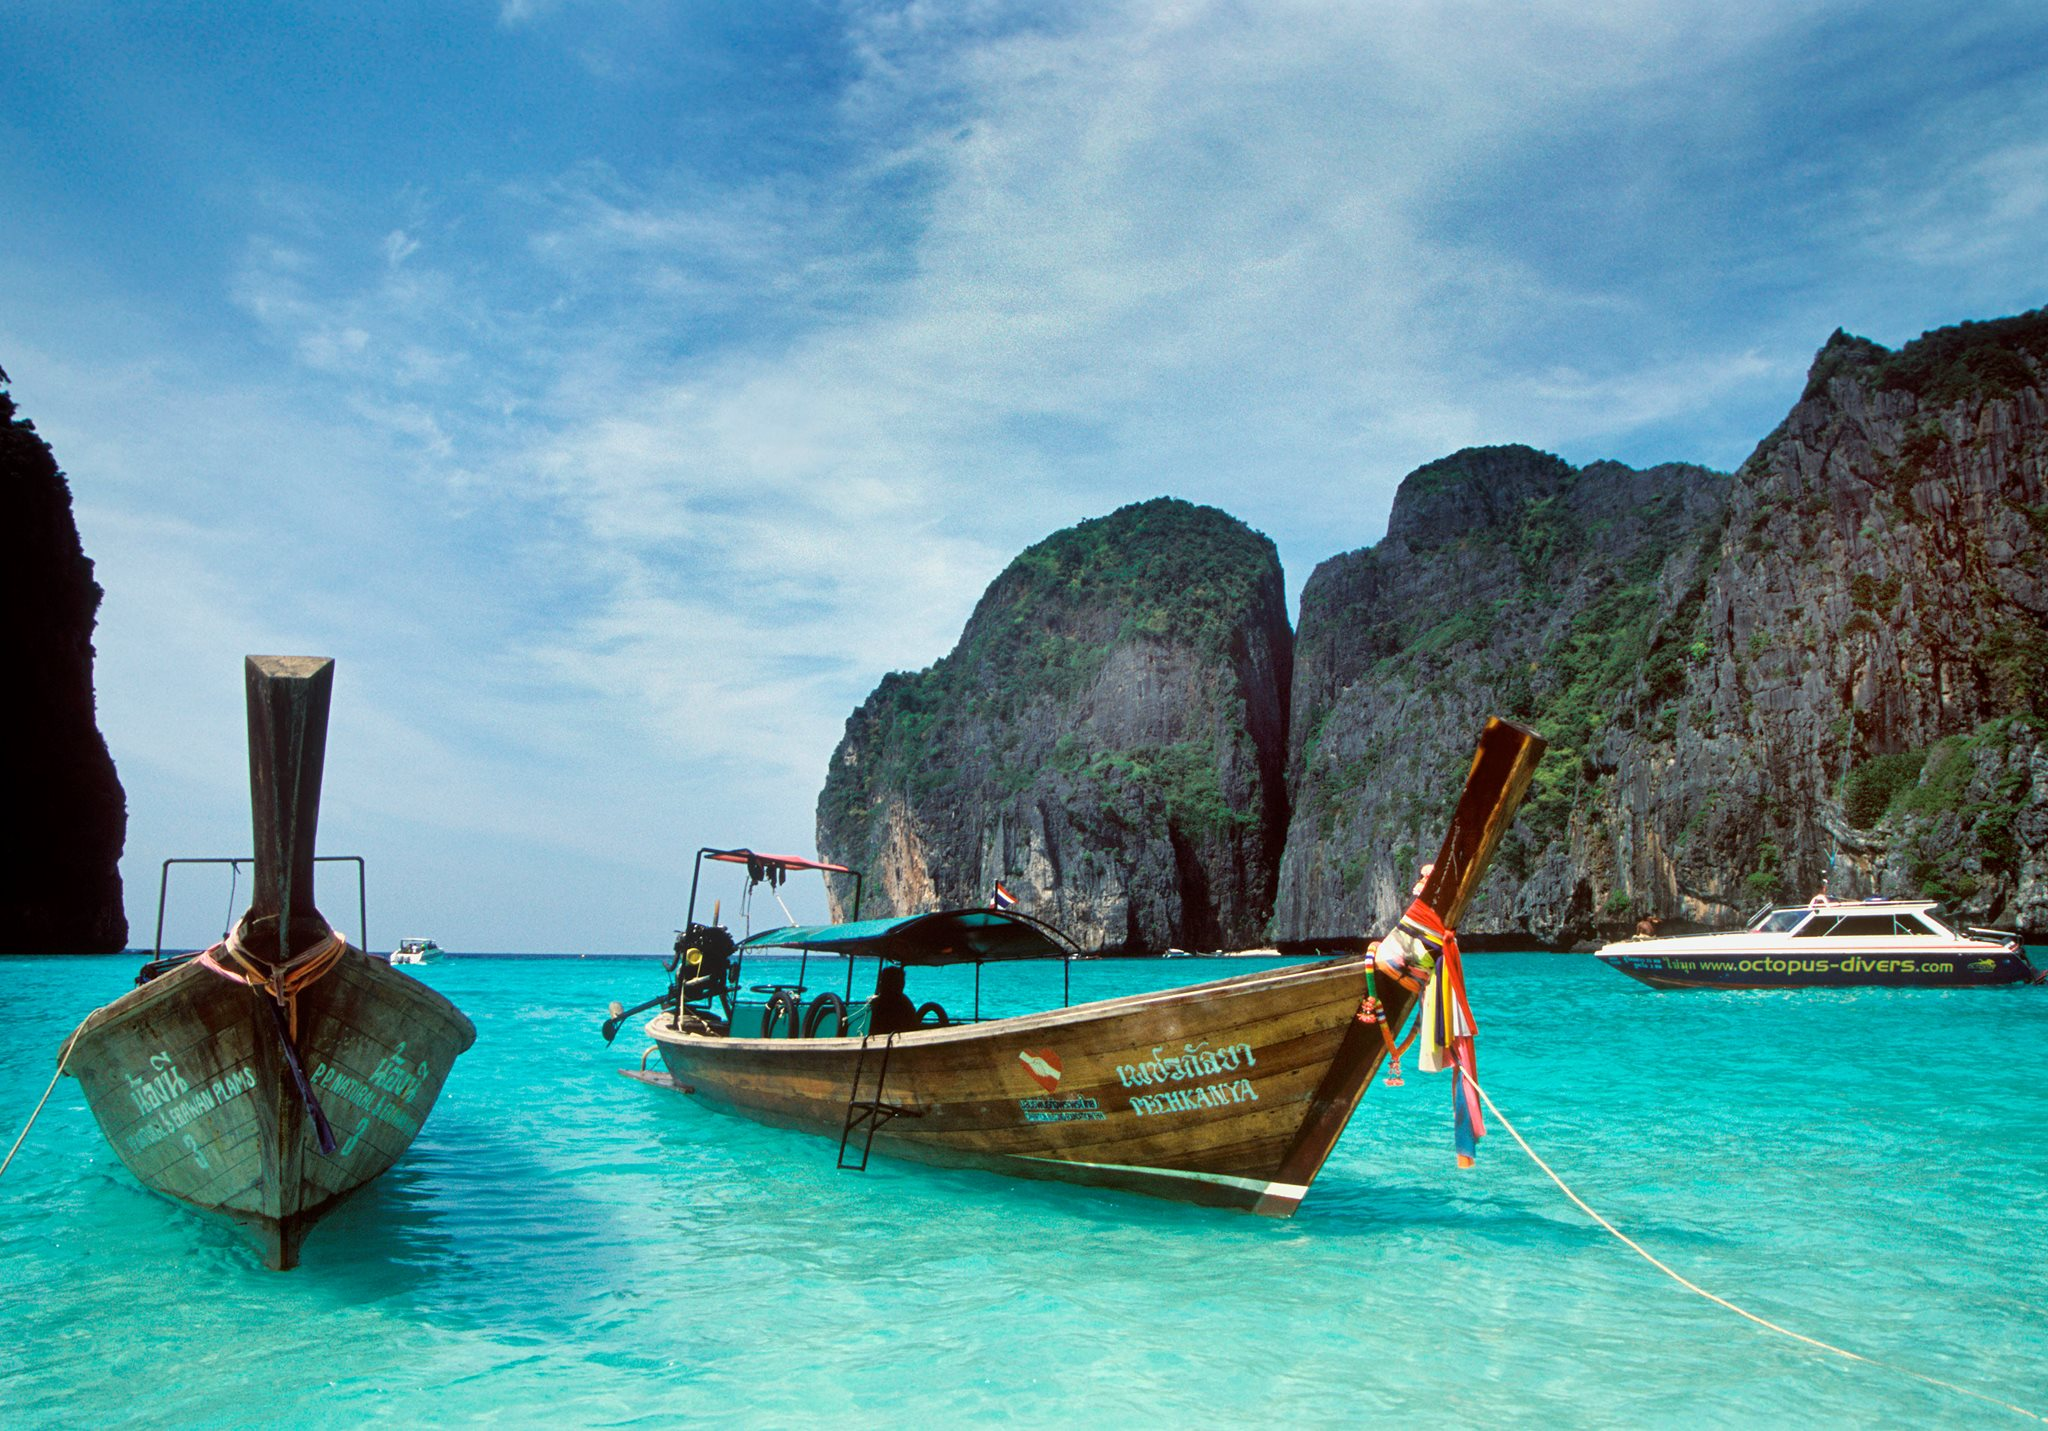 Thailand Travel Packages 2017 / 2018